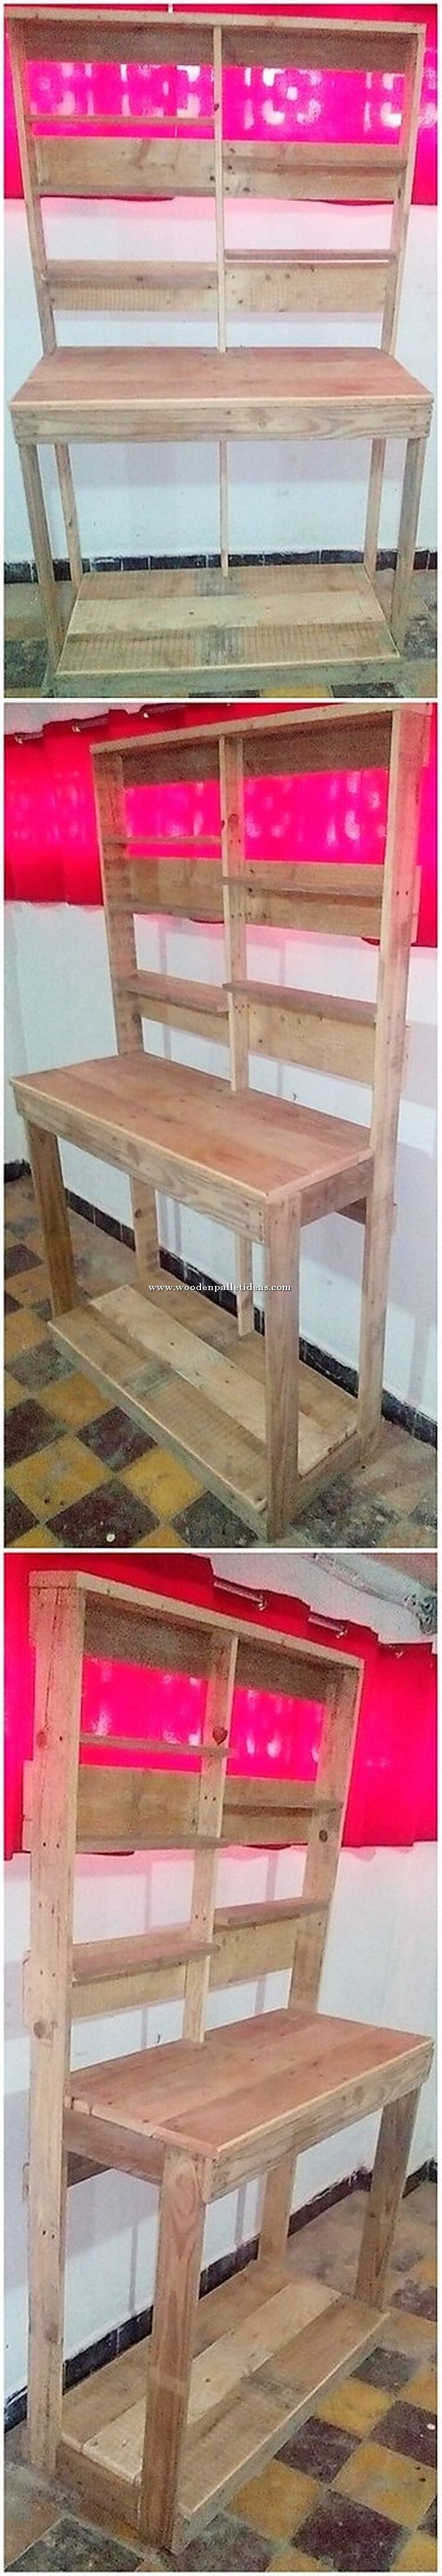 Wooden Pallet Shelving Unit